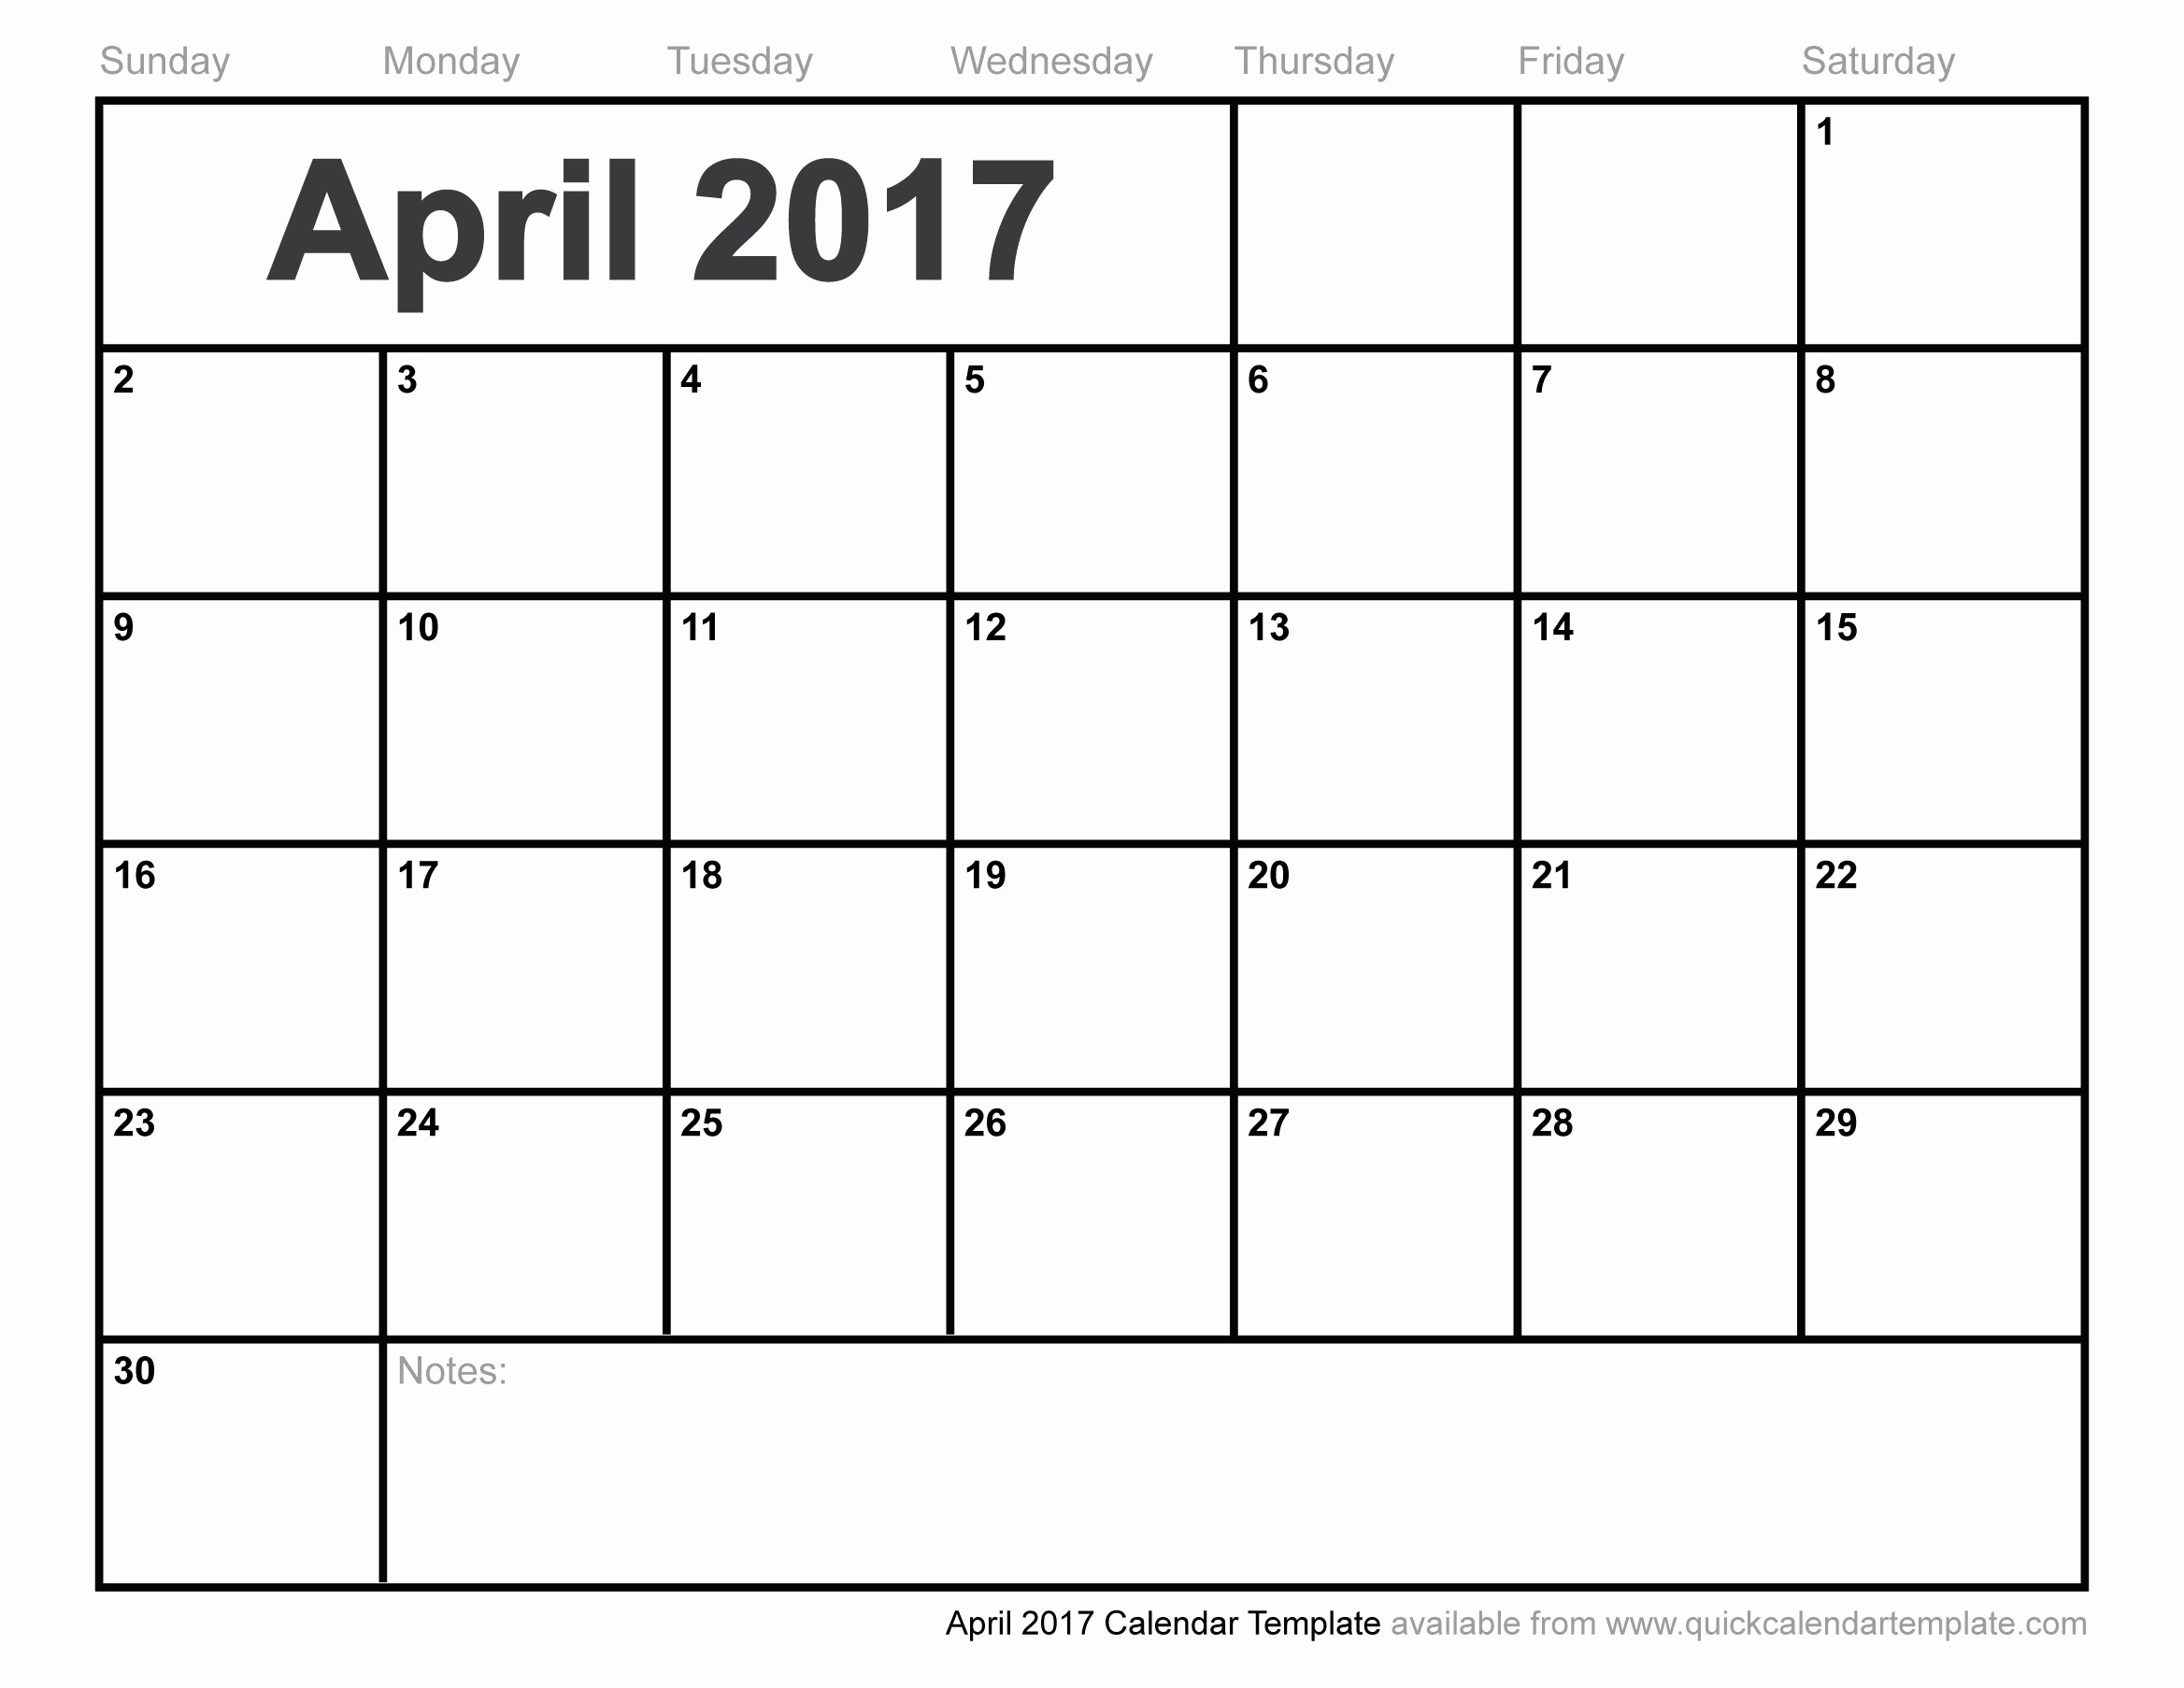 Free Blank Printable Calendar 2017 Unique Blank April 2017 Calendar